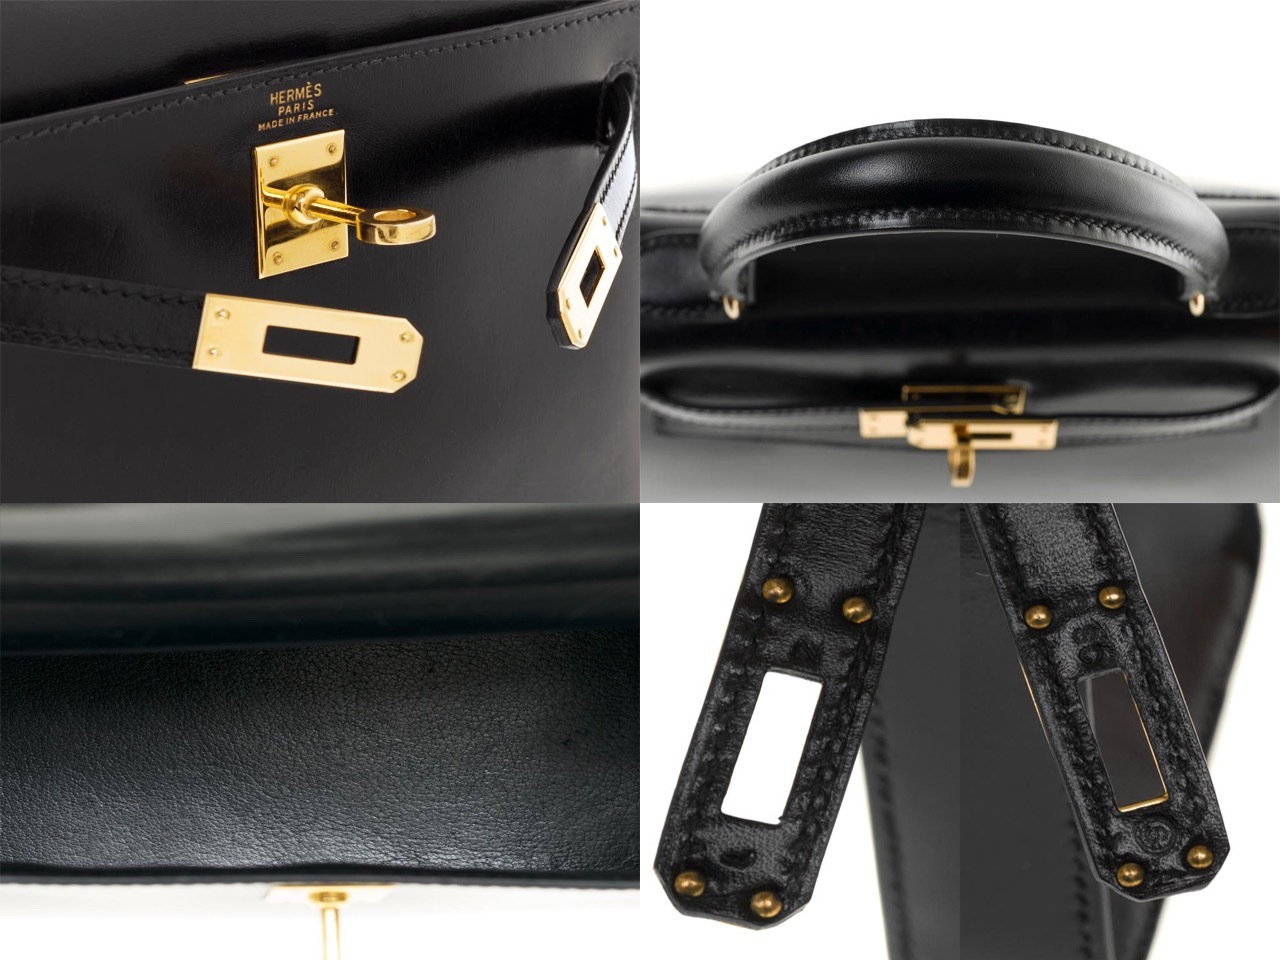 Hermès-Mini-Kelly-20-Black-8-1